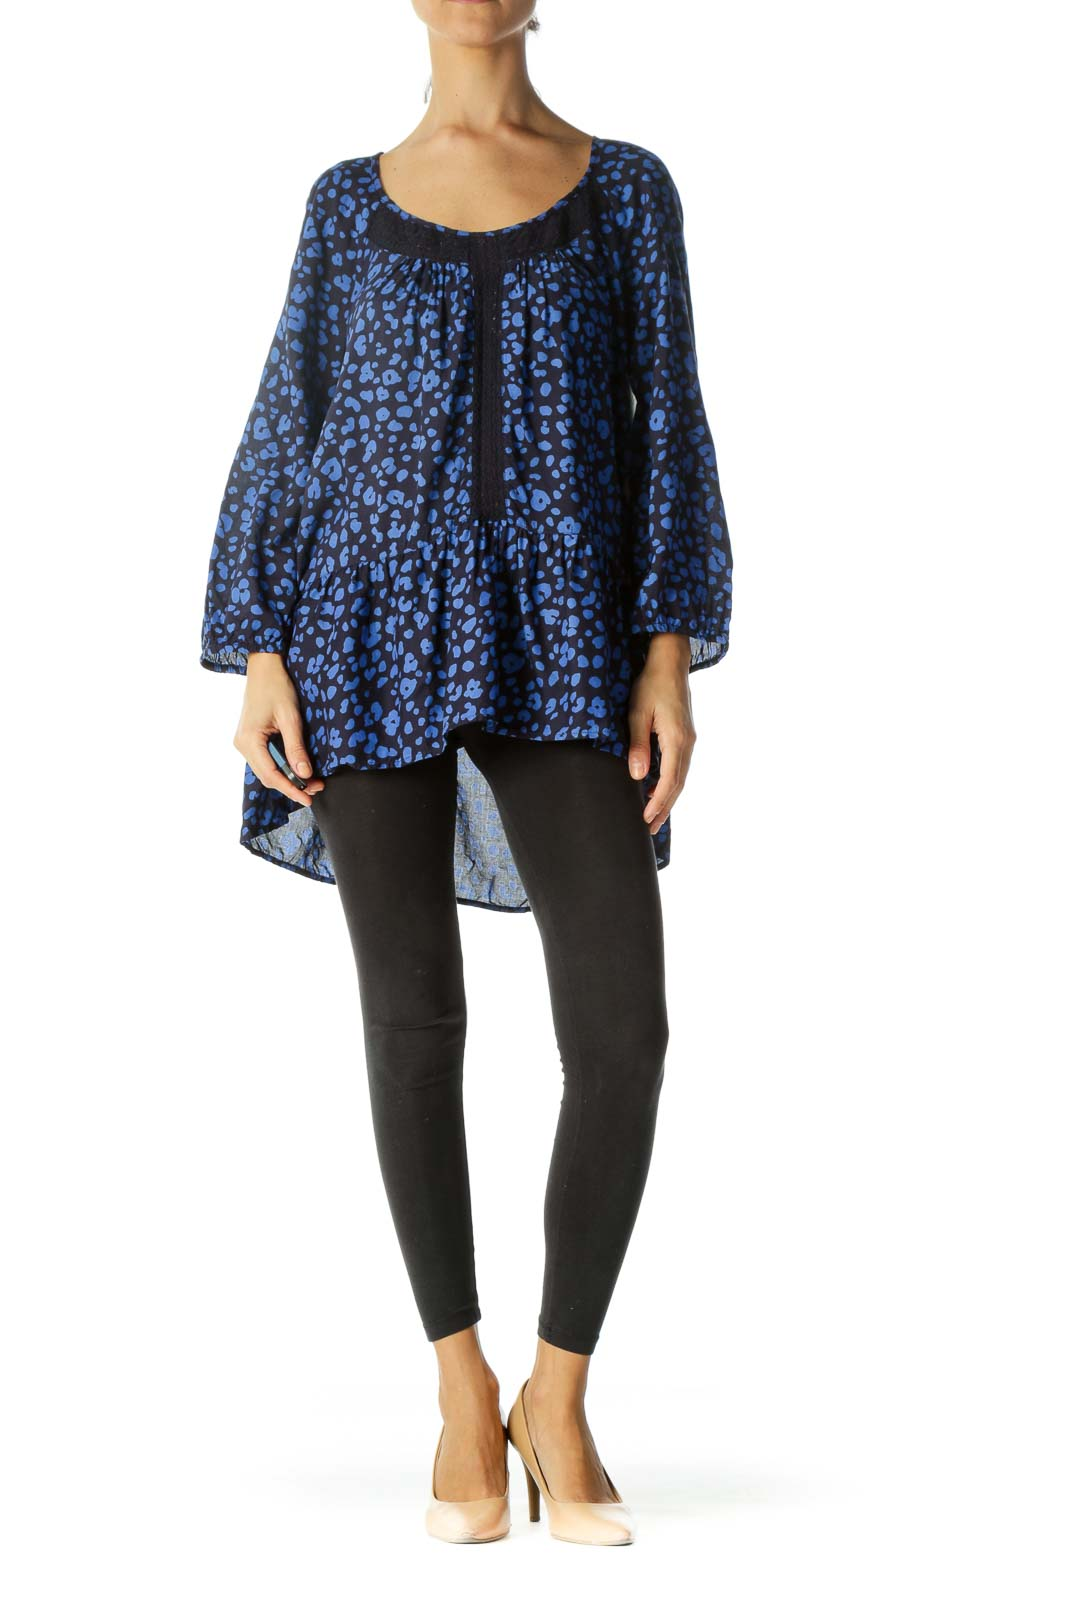 Blue & Navy Animal Print Flared Lace-Piping Long-Sleeve Blouse